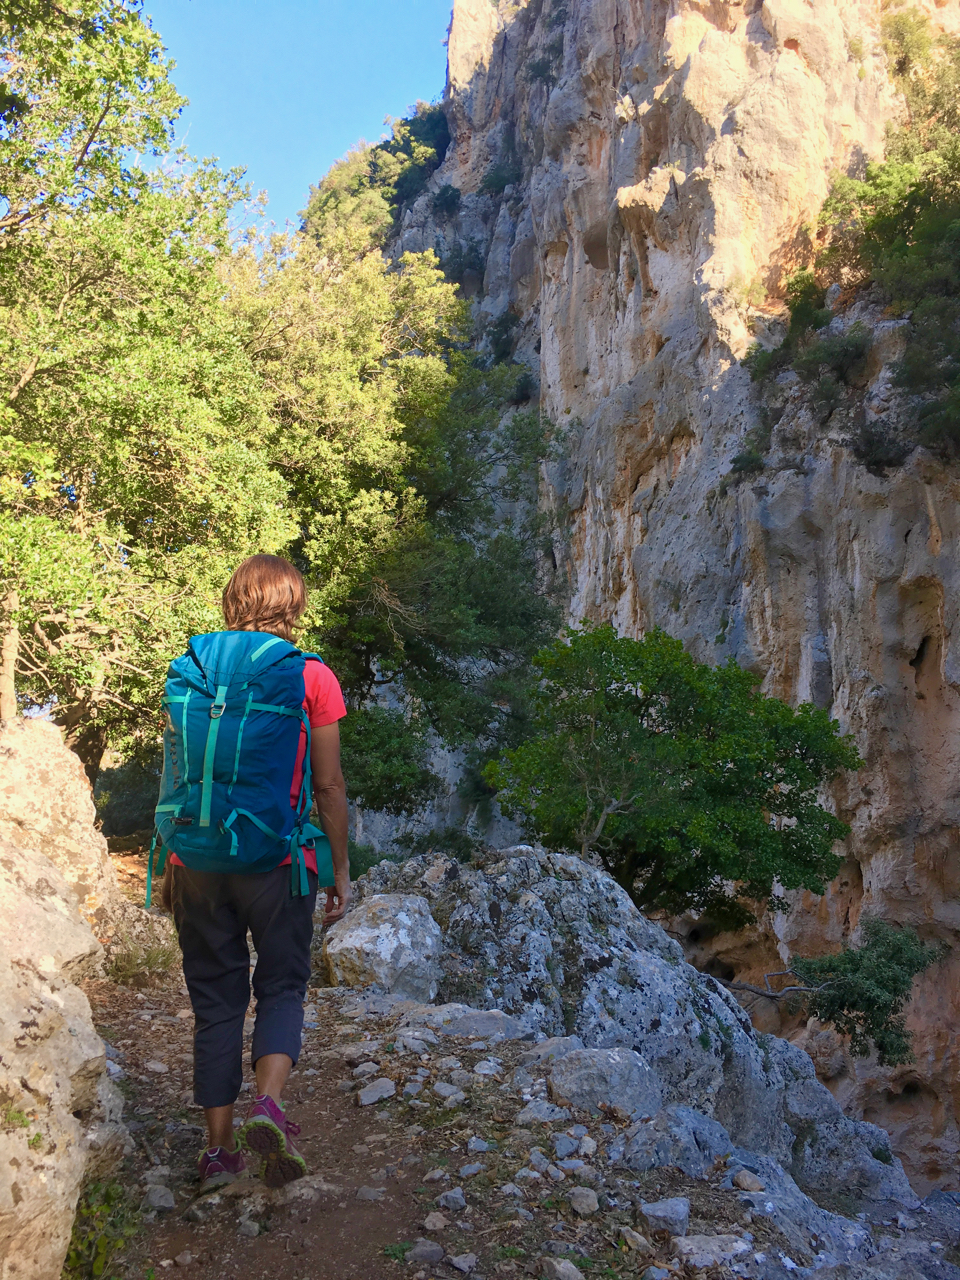 Karen hikes through the canyon of Saint Nicolas. This is a lush and beautiful canyon that is worth the visit for the climbing, the hiking, the striking monastery, and the exciting drive to and from town.